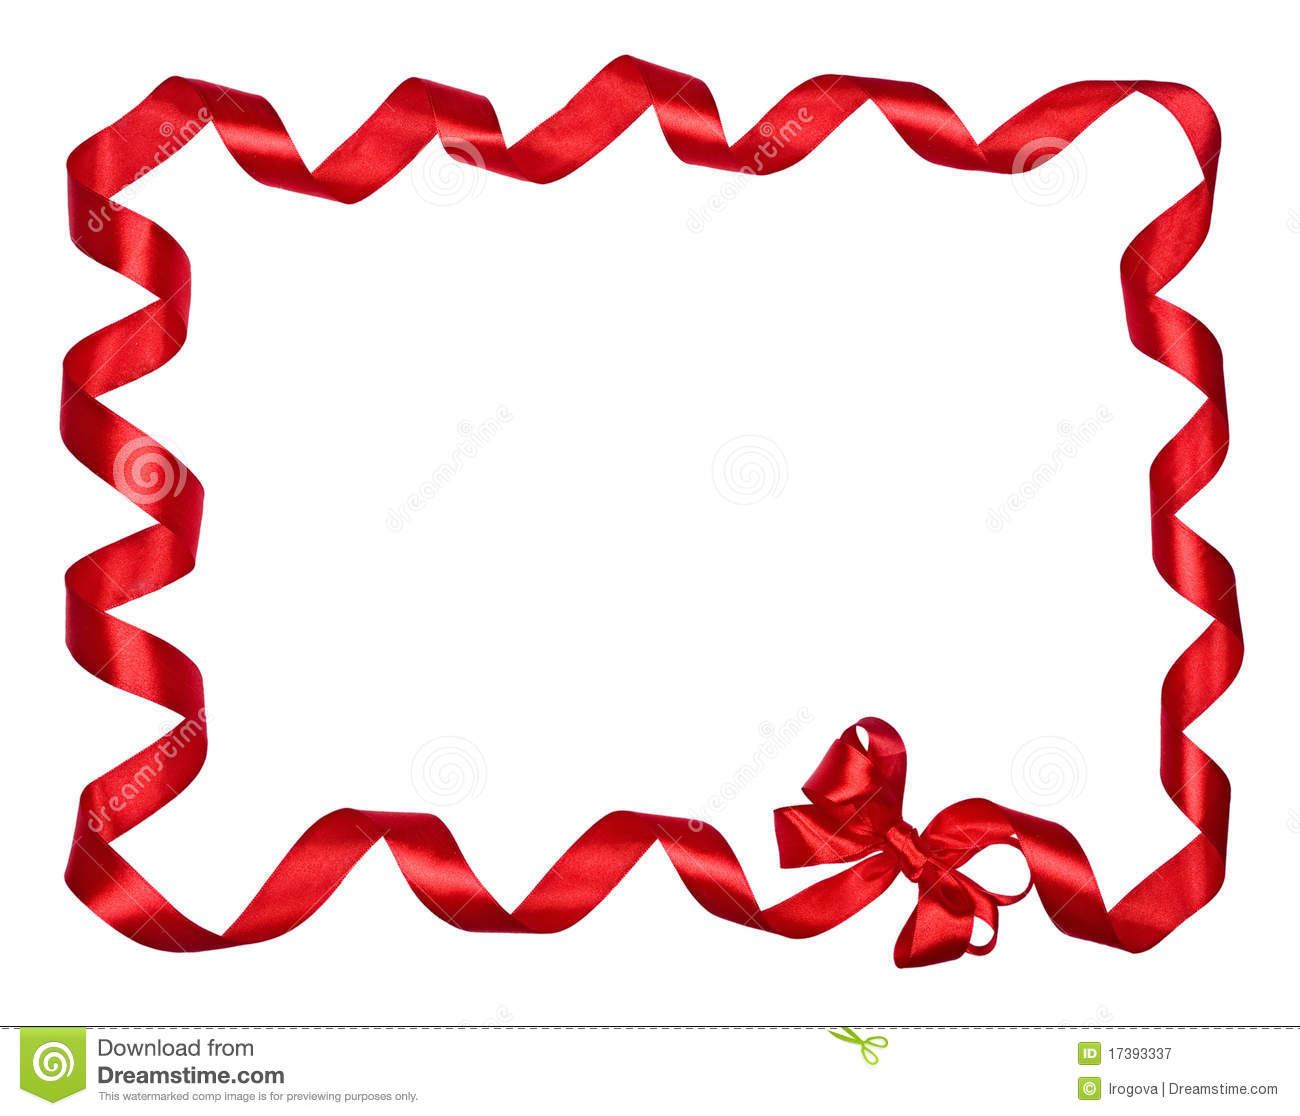 Red Bow Ribbons Border Royalty Free Stock Photography ...